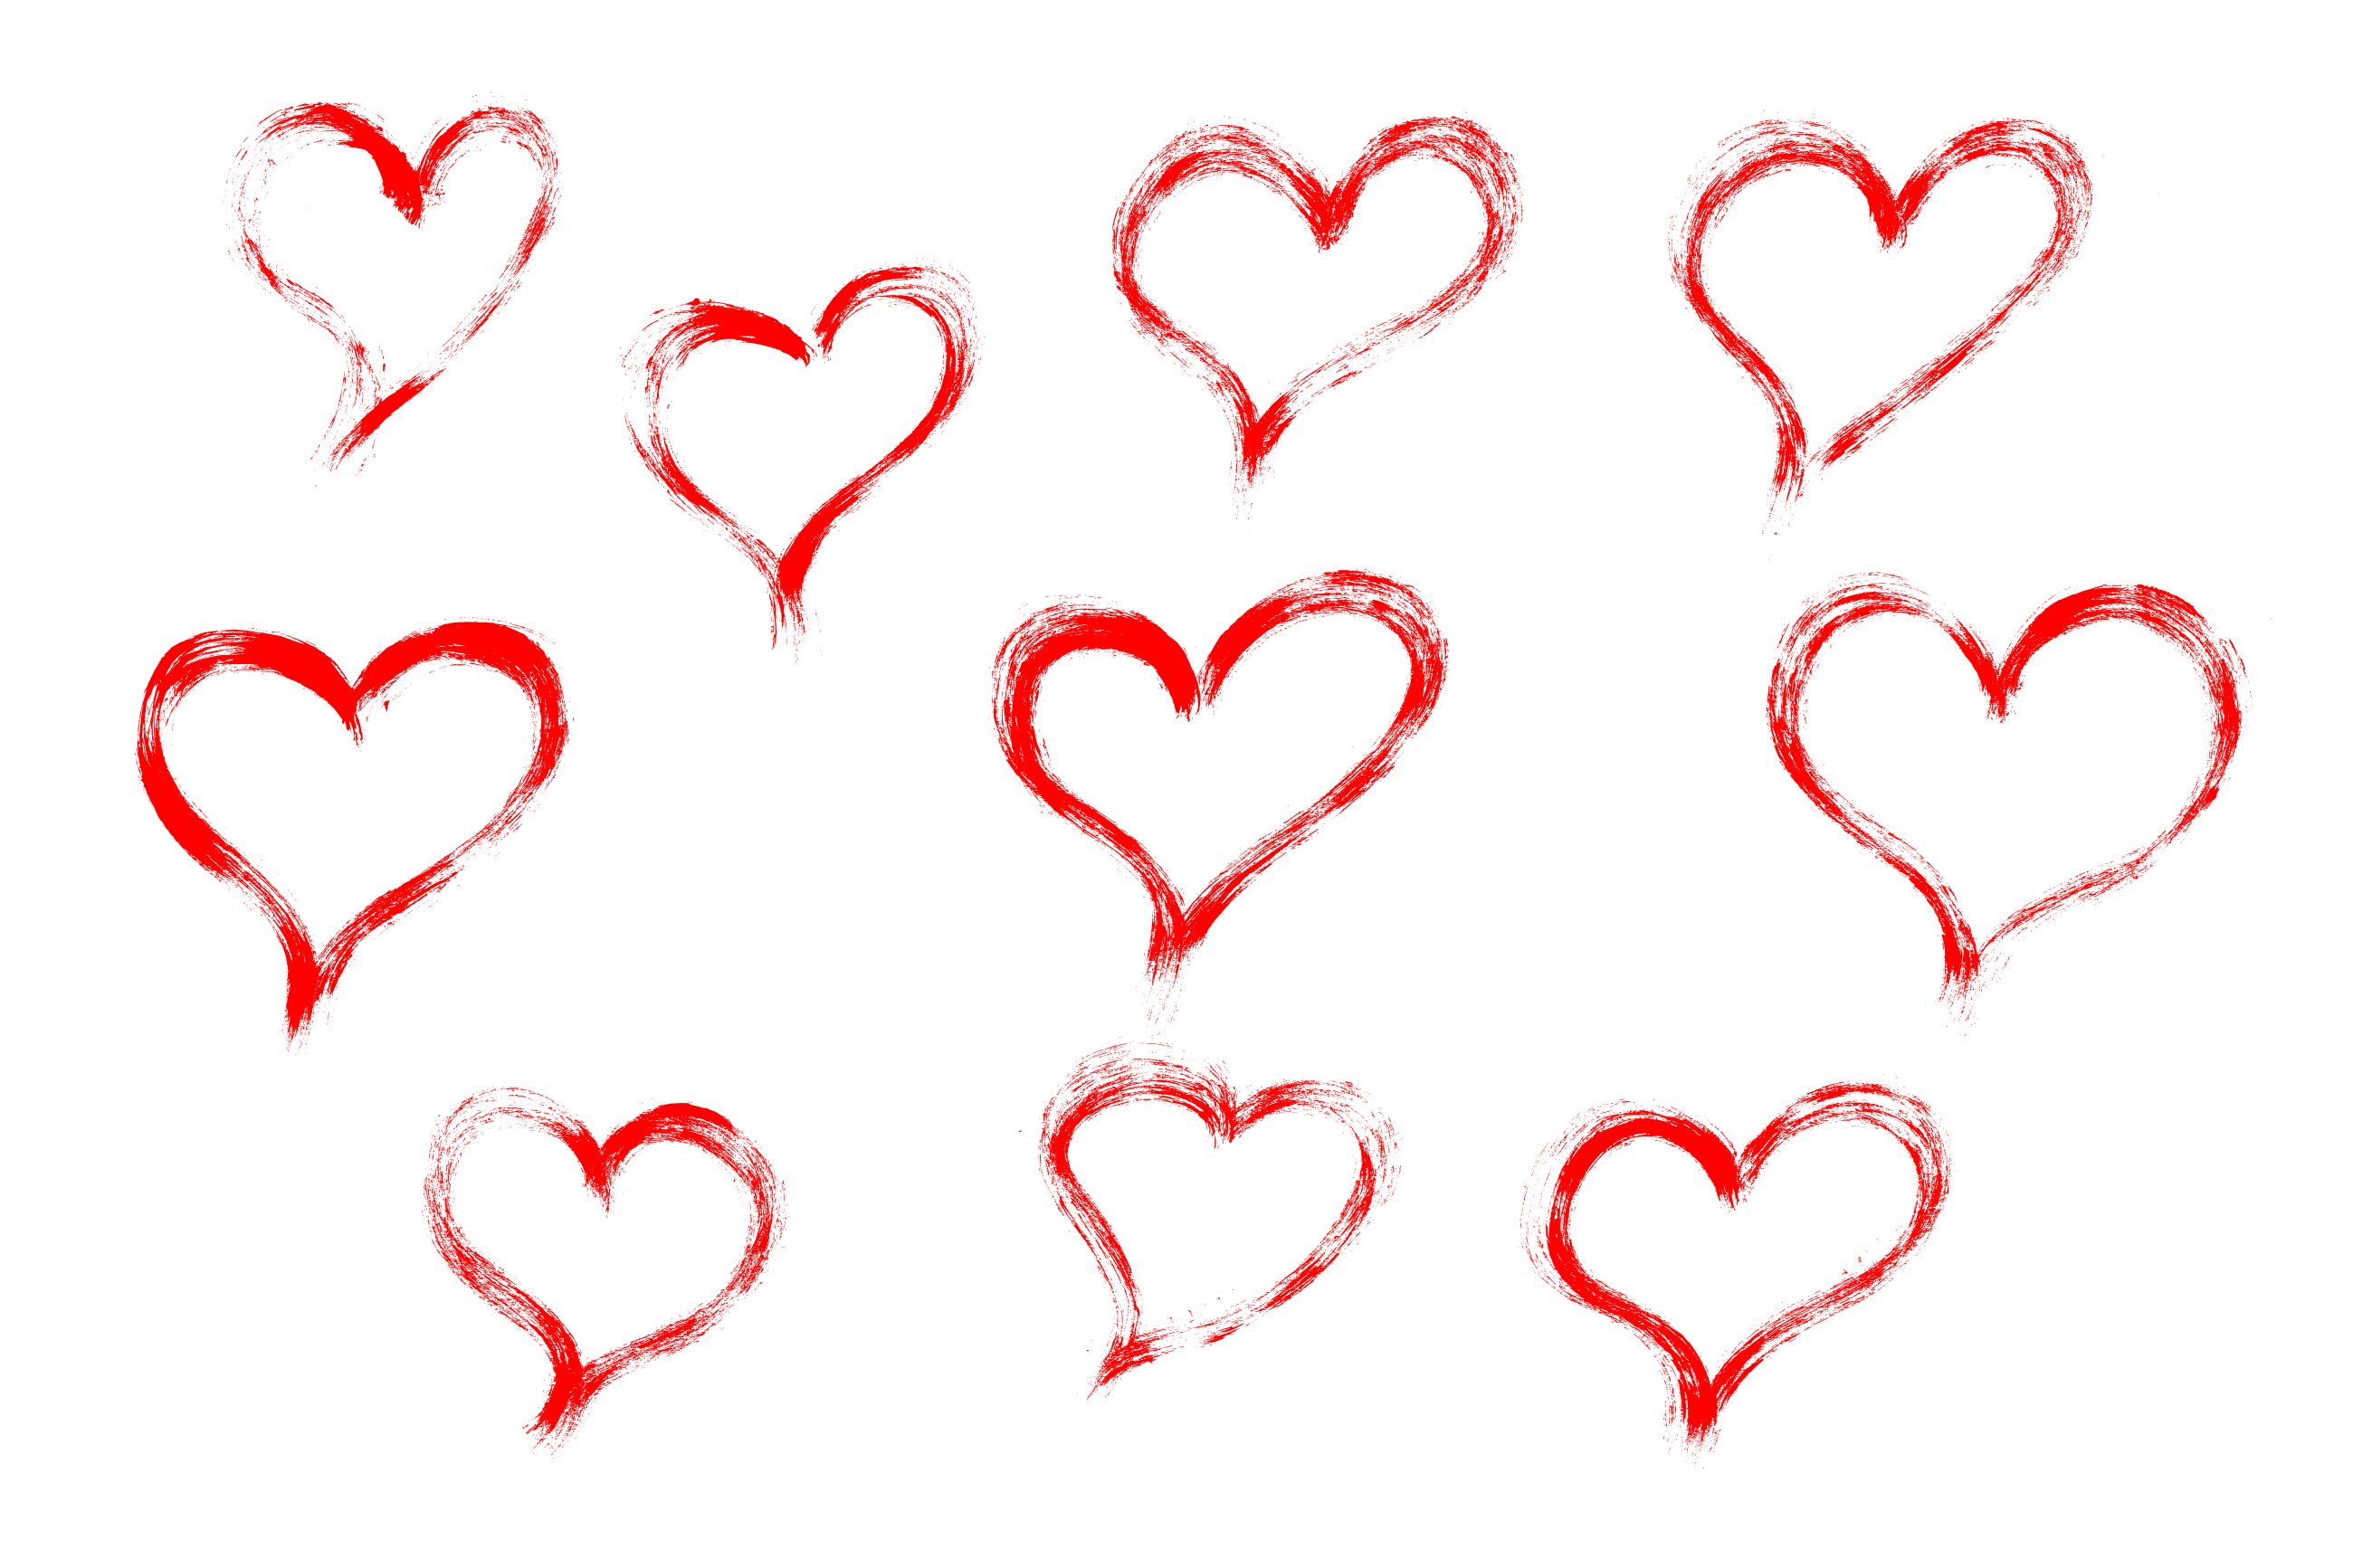 10-red-grunge-brush-stroke-heart-cover.png